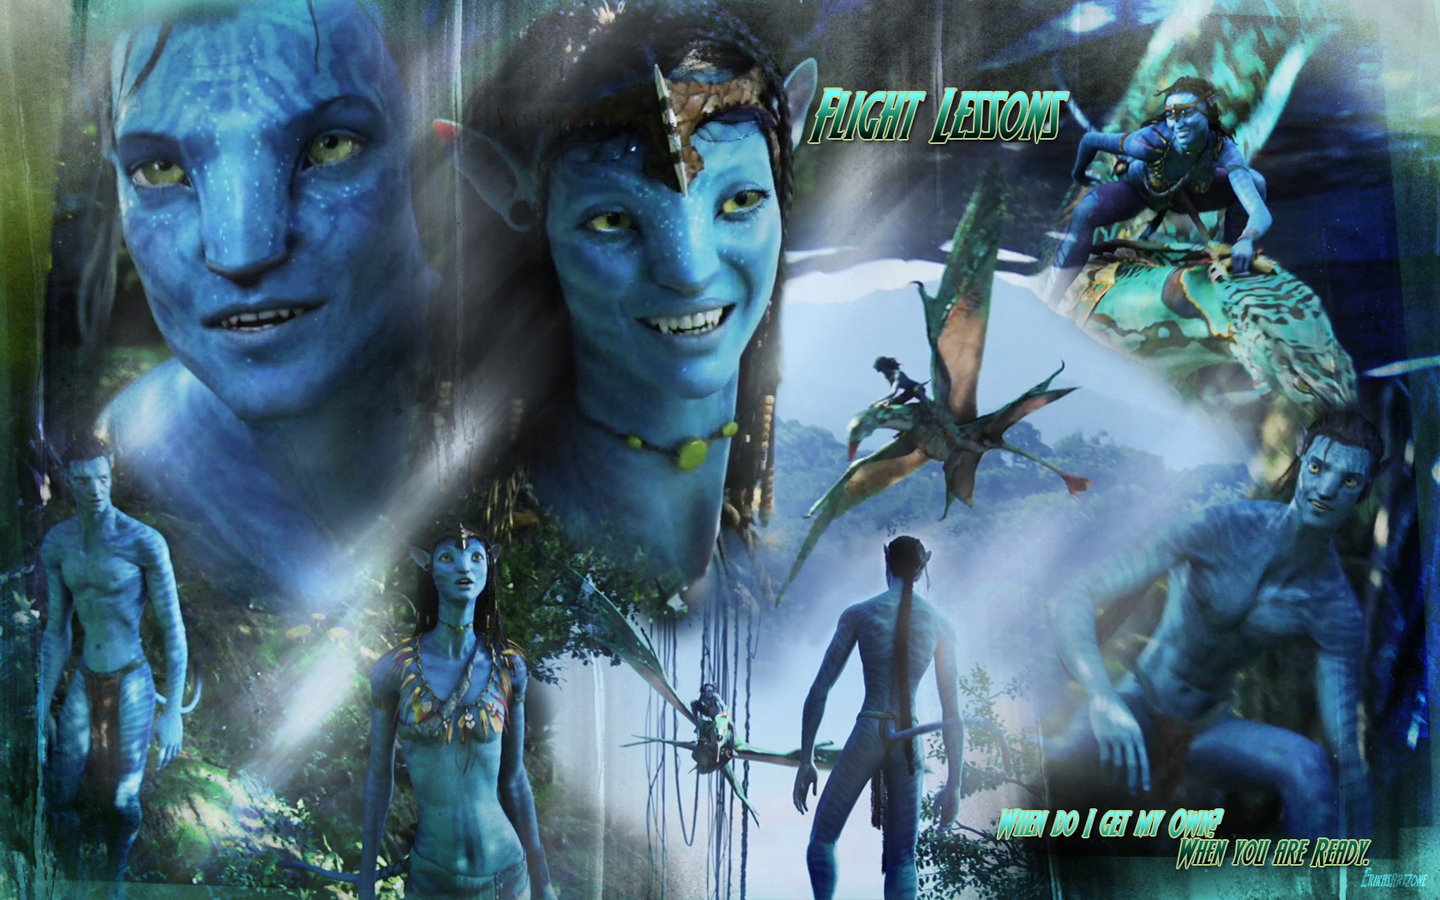 Avatar wallpapers 3 avatar wallpapers 4 avatar wallpapers 5 avatar